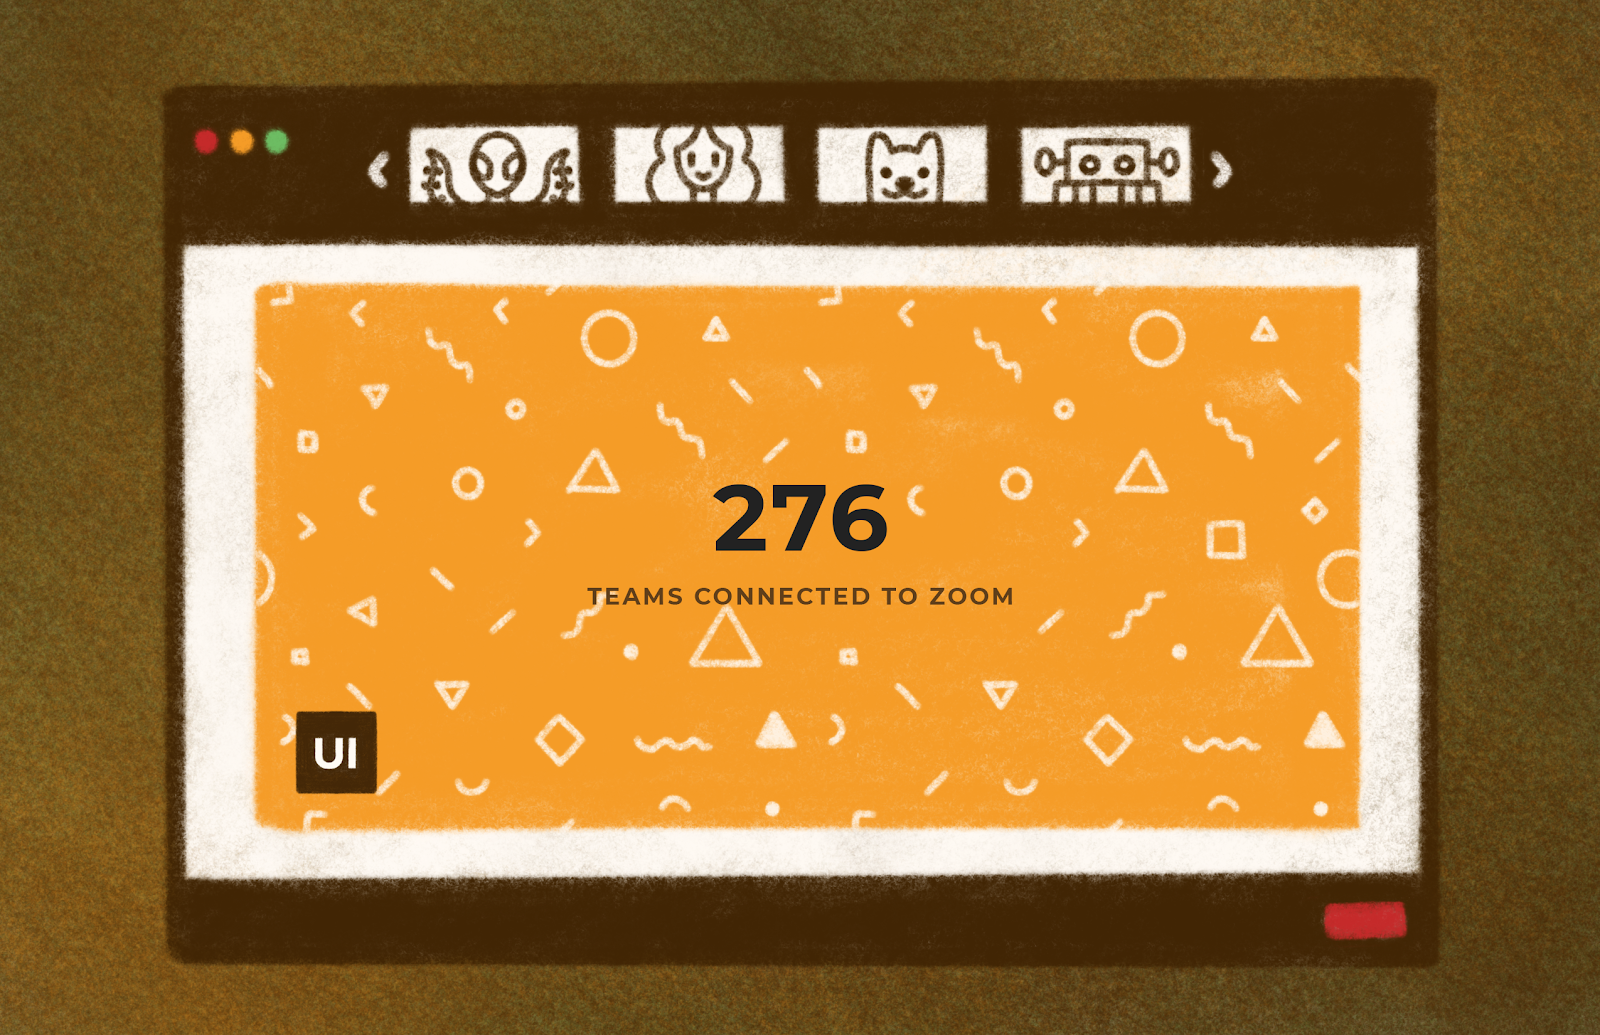 Computer screen illustration on brown background. Statistic about User Interviews Zoom integration users.